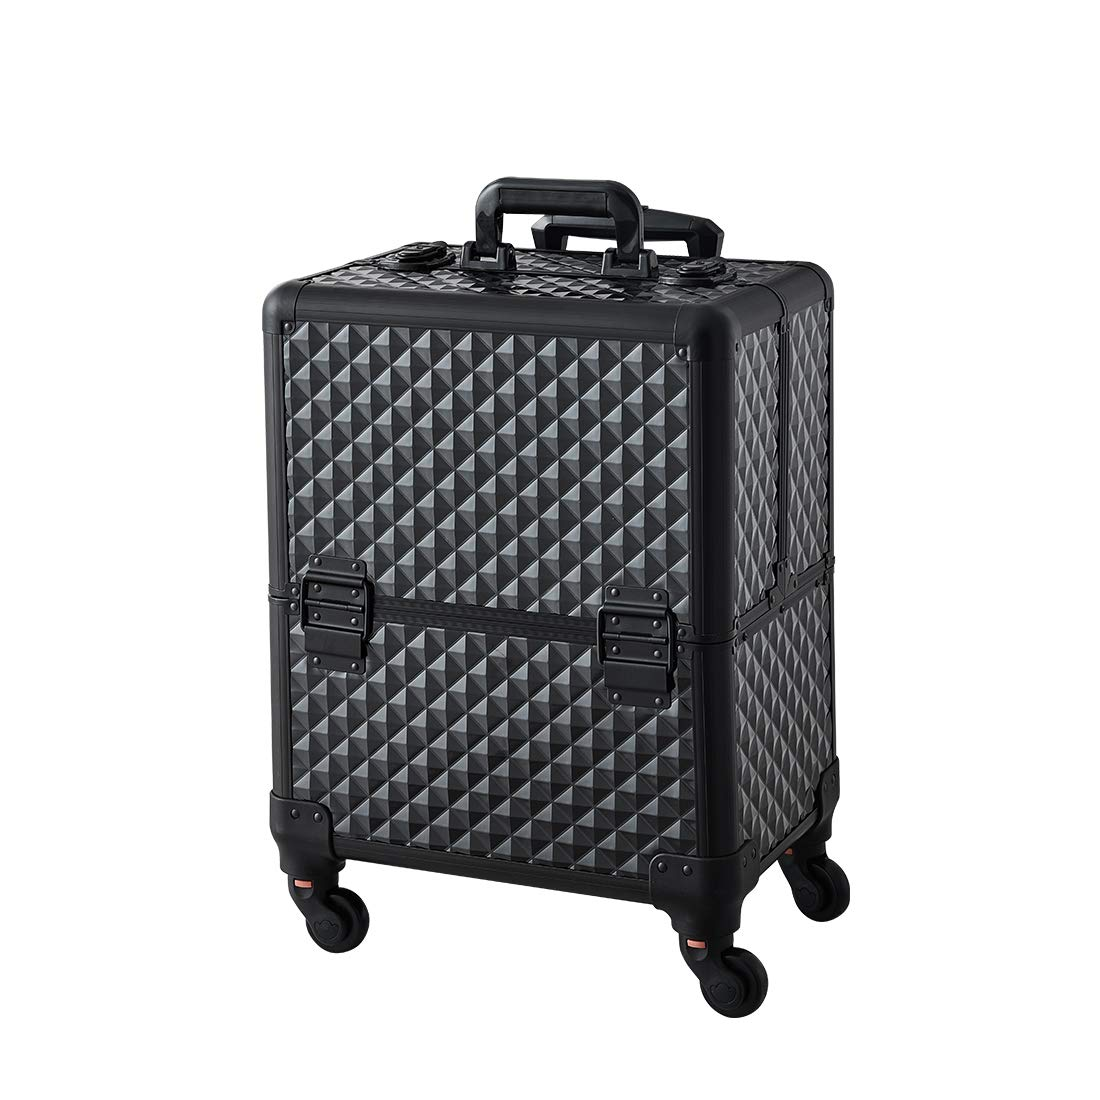 Makeup Train Case Professional Artist Rolling Trolley Cosmetic Storage Organizer with Folding Trays and Universal Wheels(14.76×10.24×17.52 In Black 1) NHSM